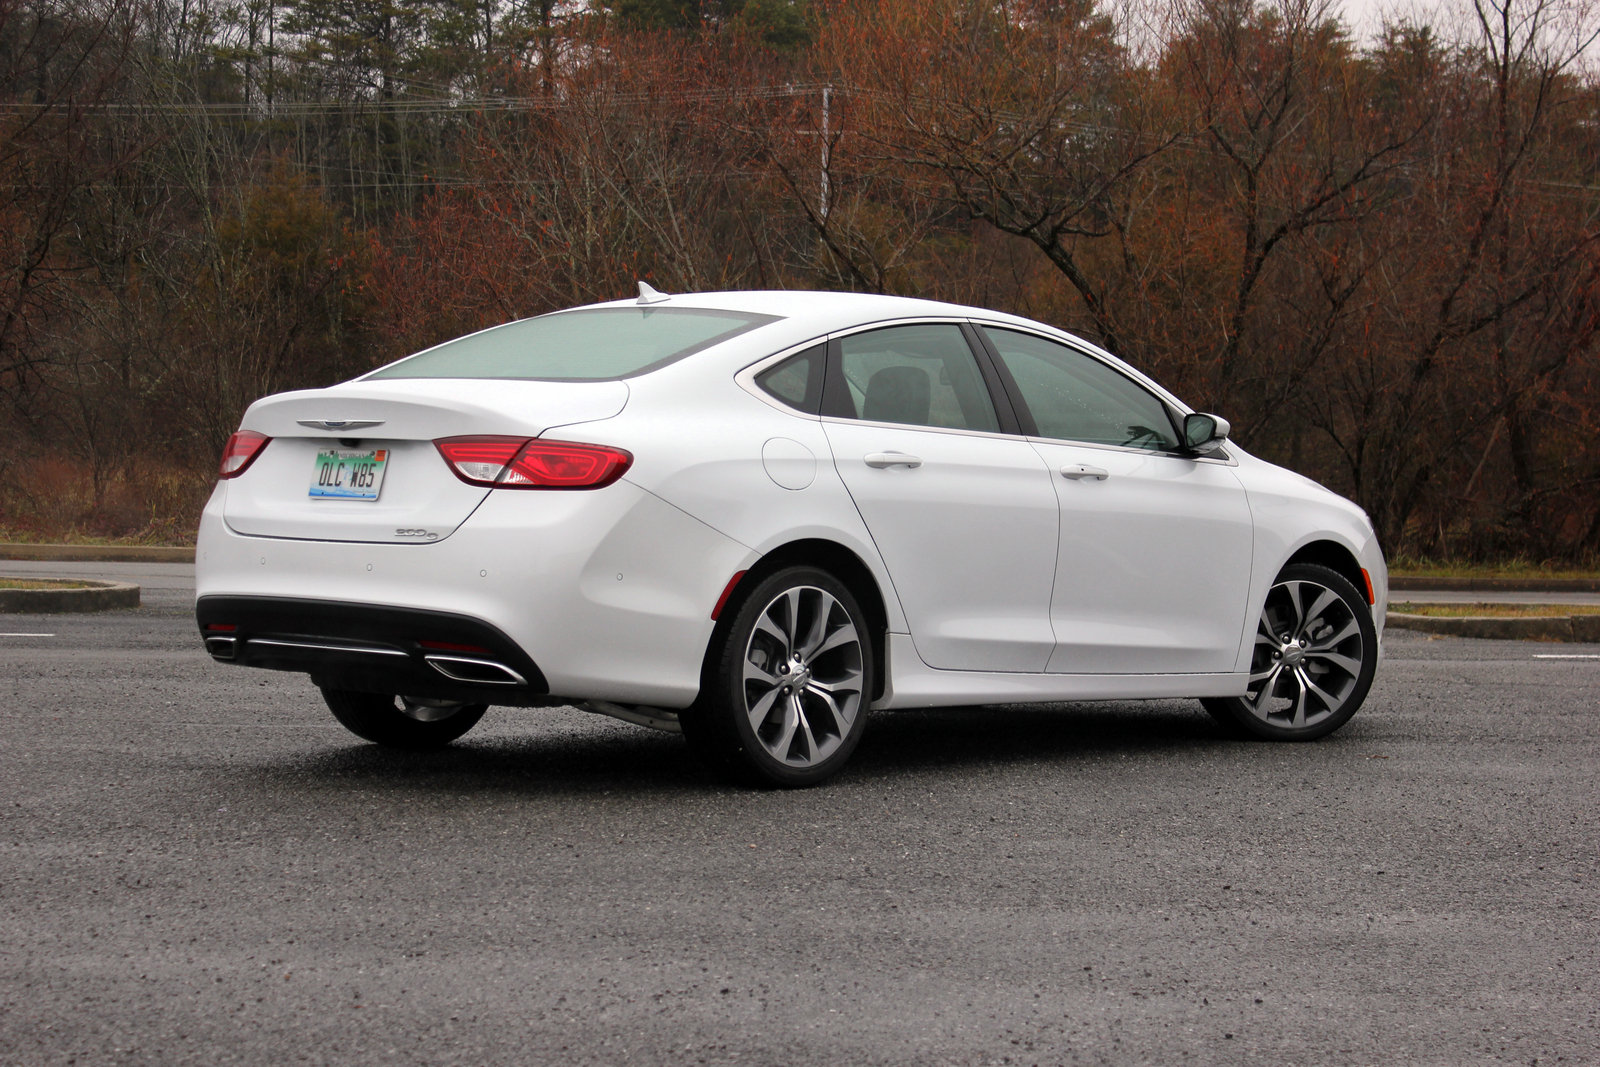 2015 chrysler 200c driven picture 608441 car review top speed. Black Bedroom Furniture Sets. Home Design Ideas